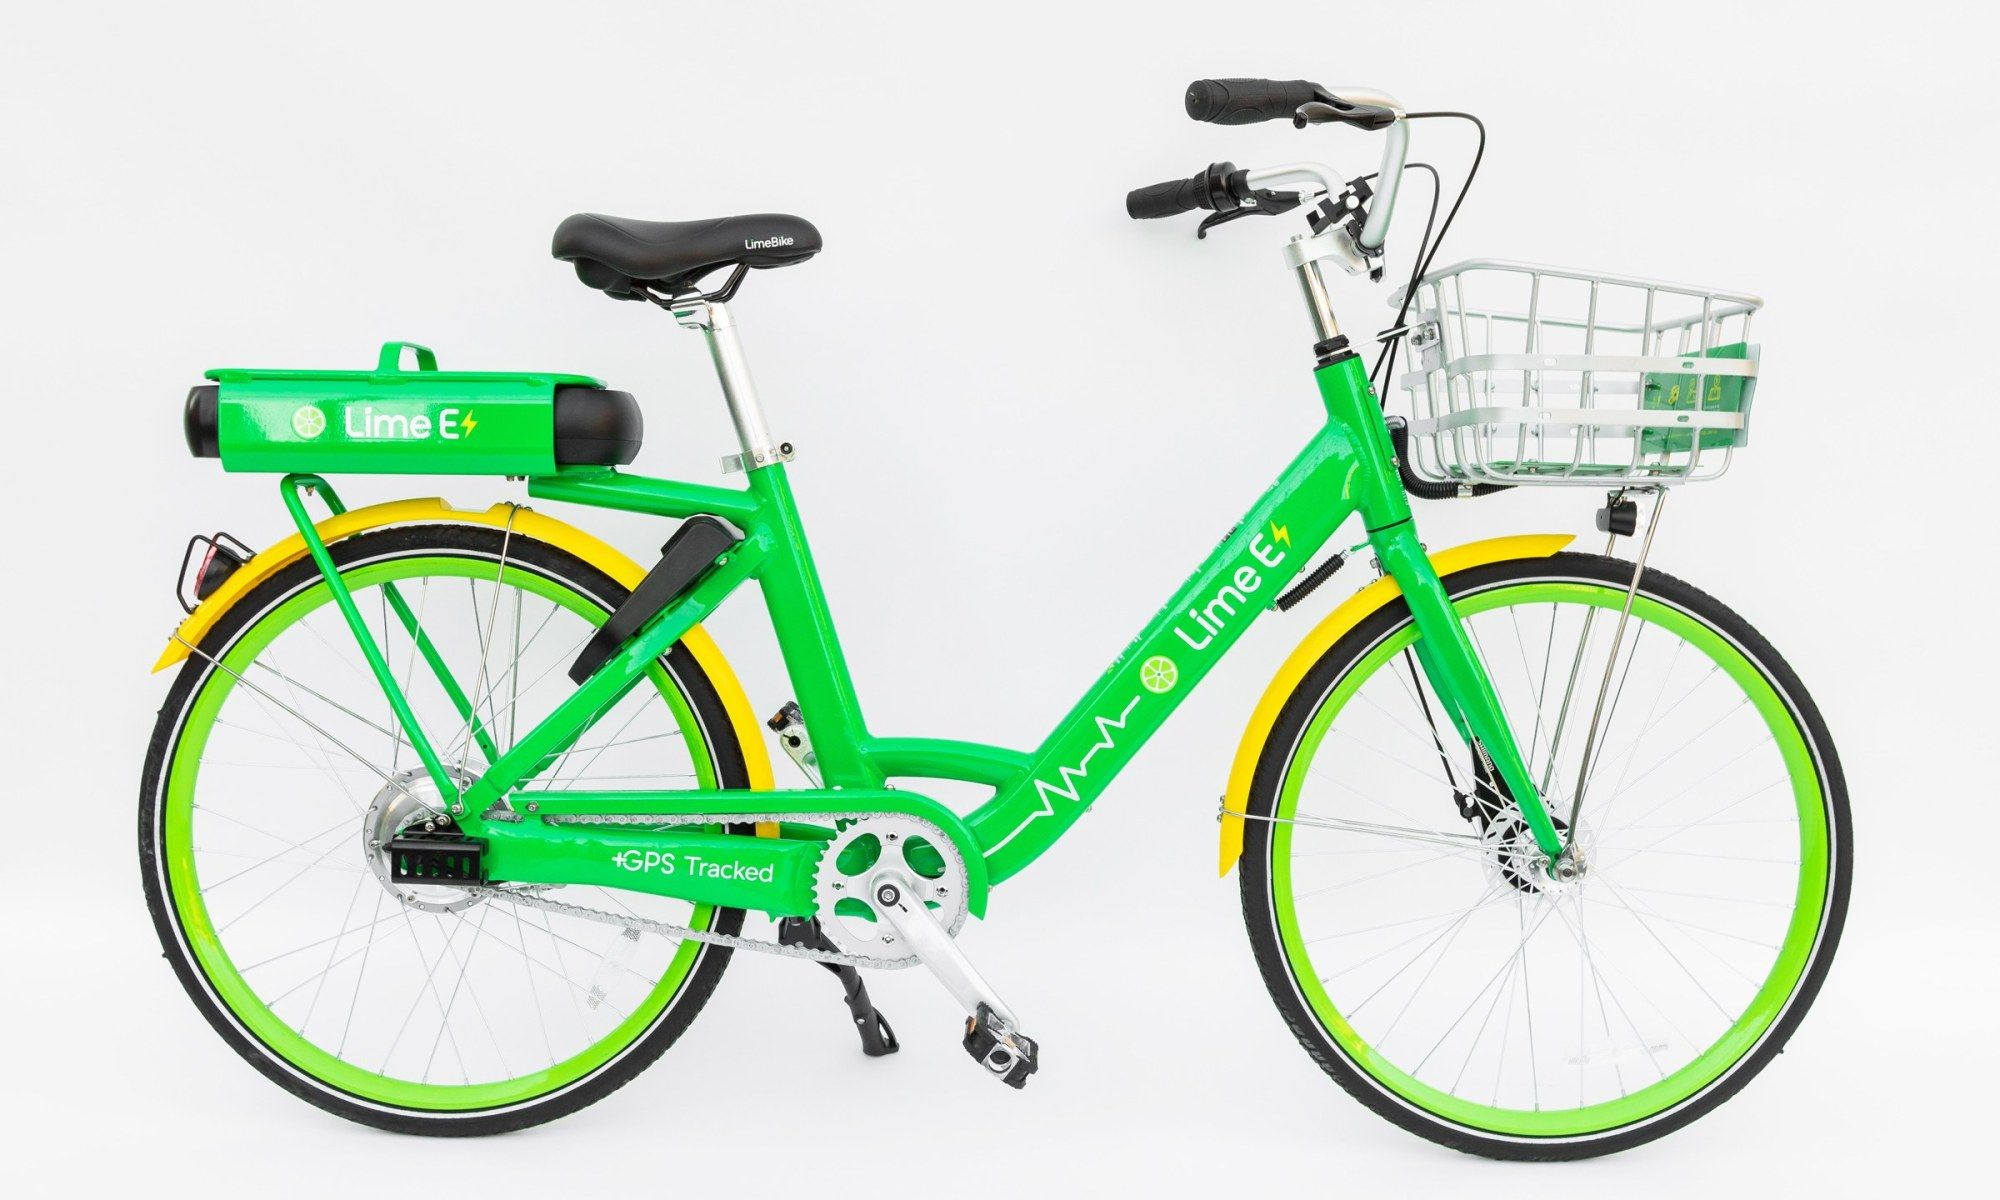 Lime S Dockless Electric Bike Has Made Its Way To London